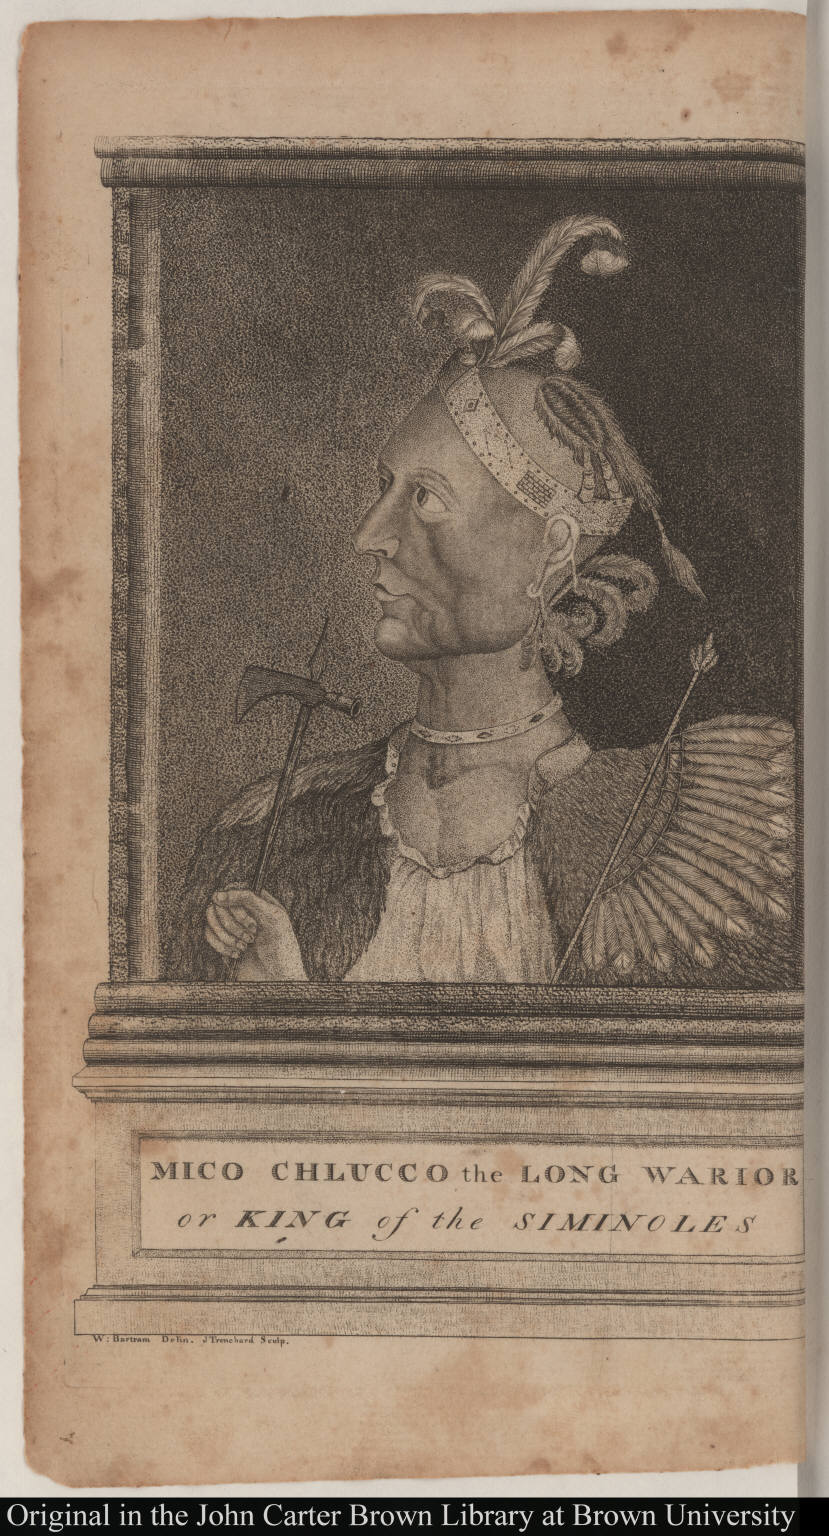 Mico Chlucco the Long Warior or King of the Siminoles